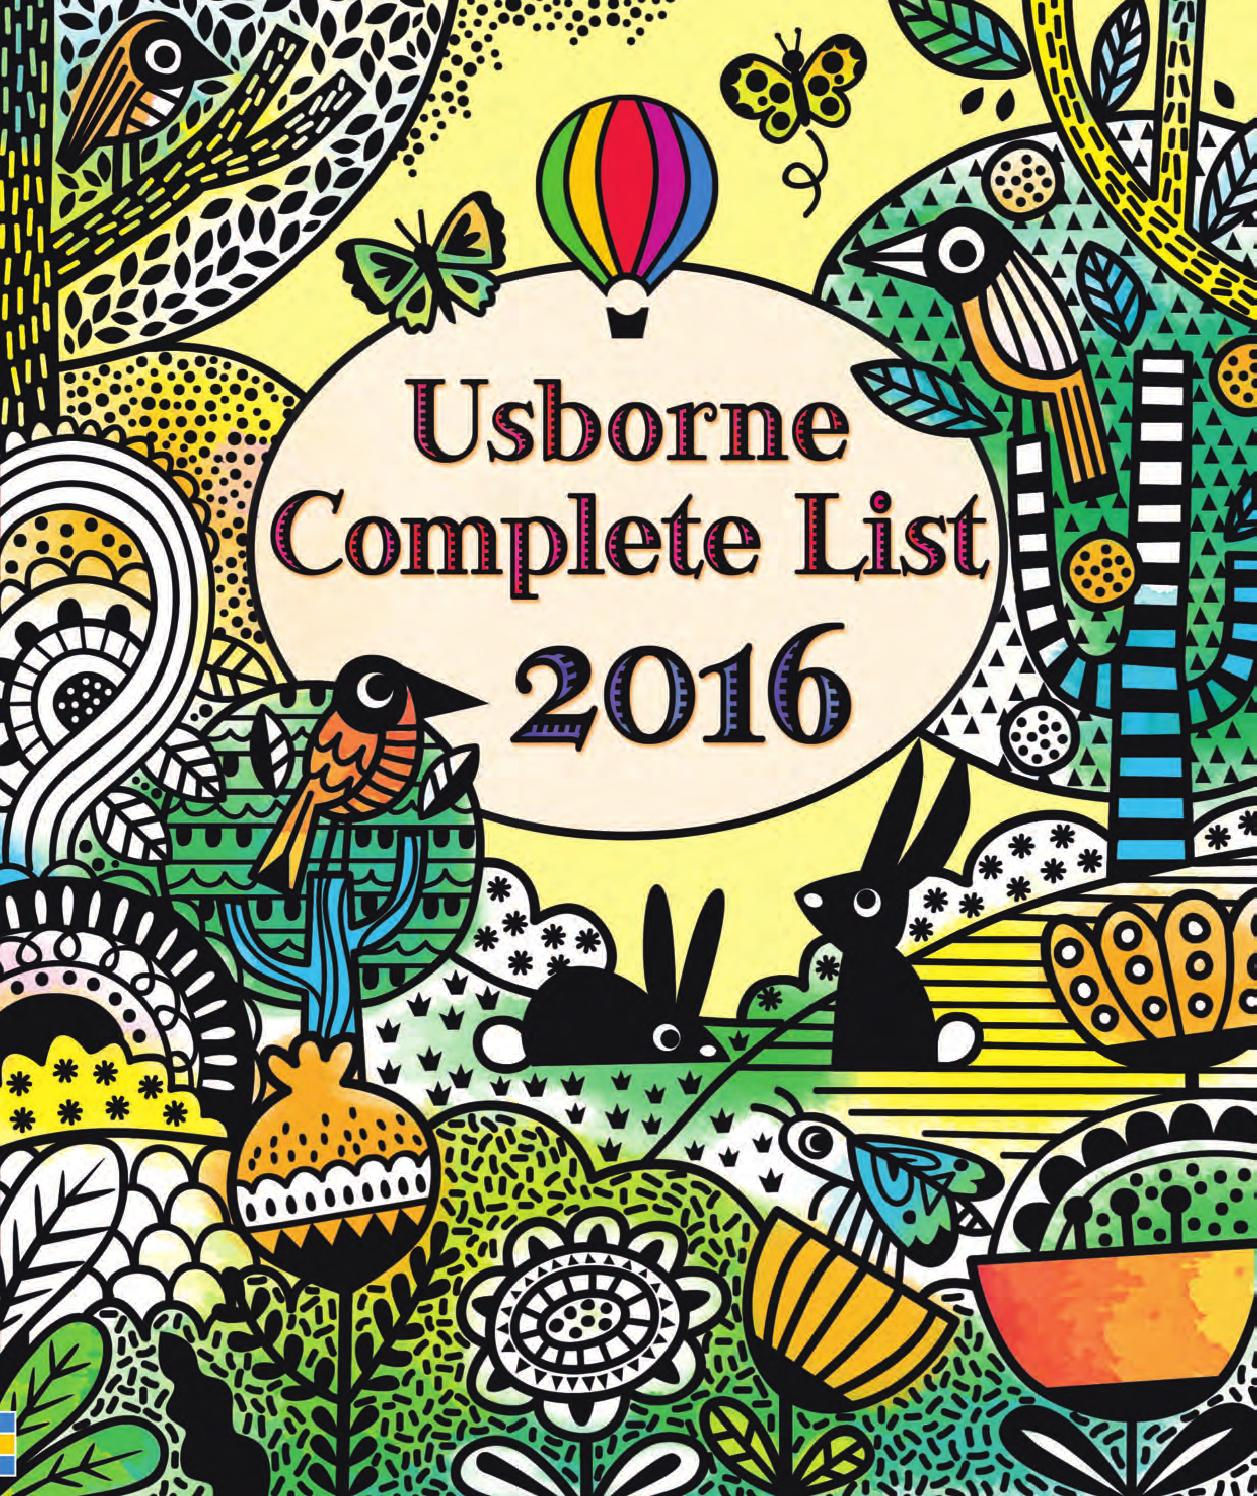 Usborne complete list 2016 by usborne books at home issuu fandeluxe Images